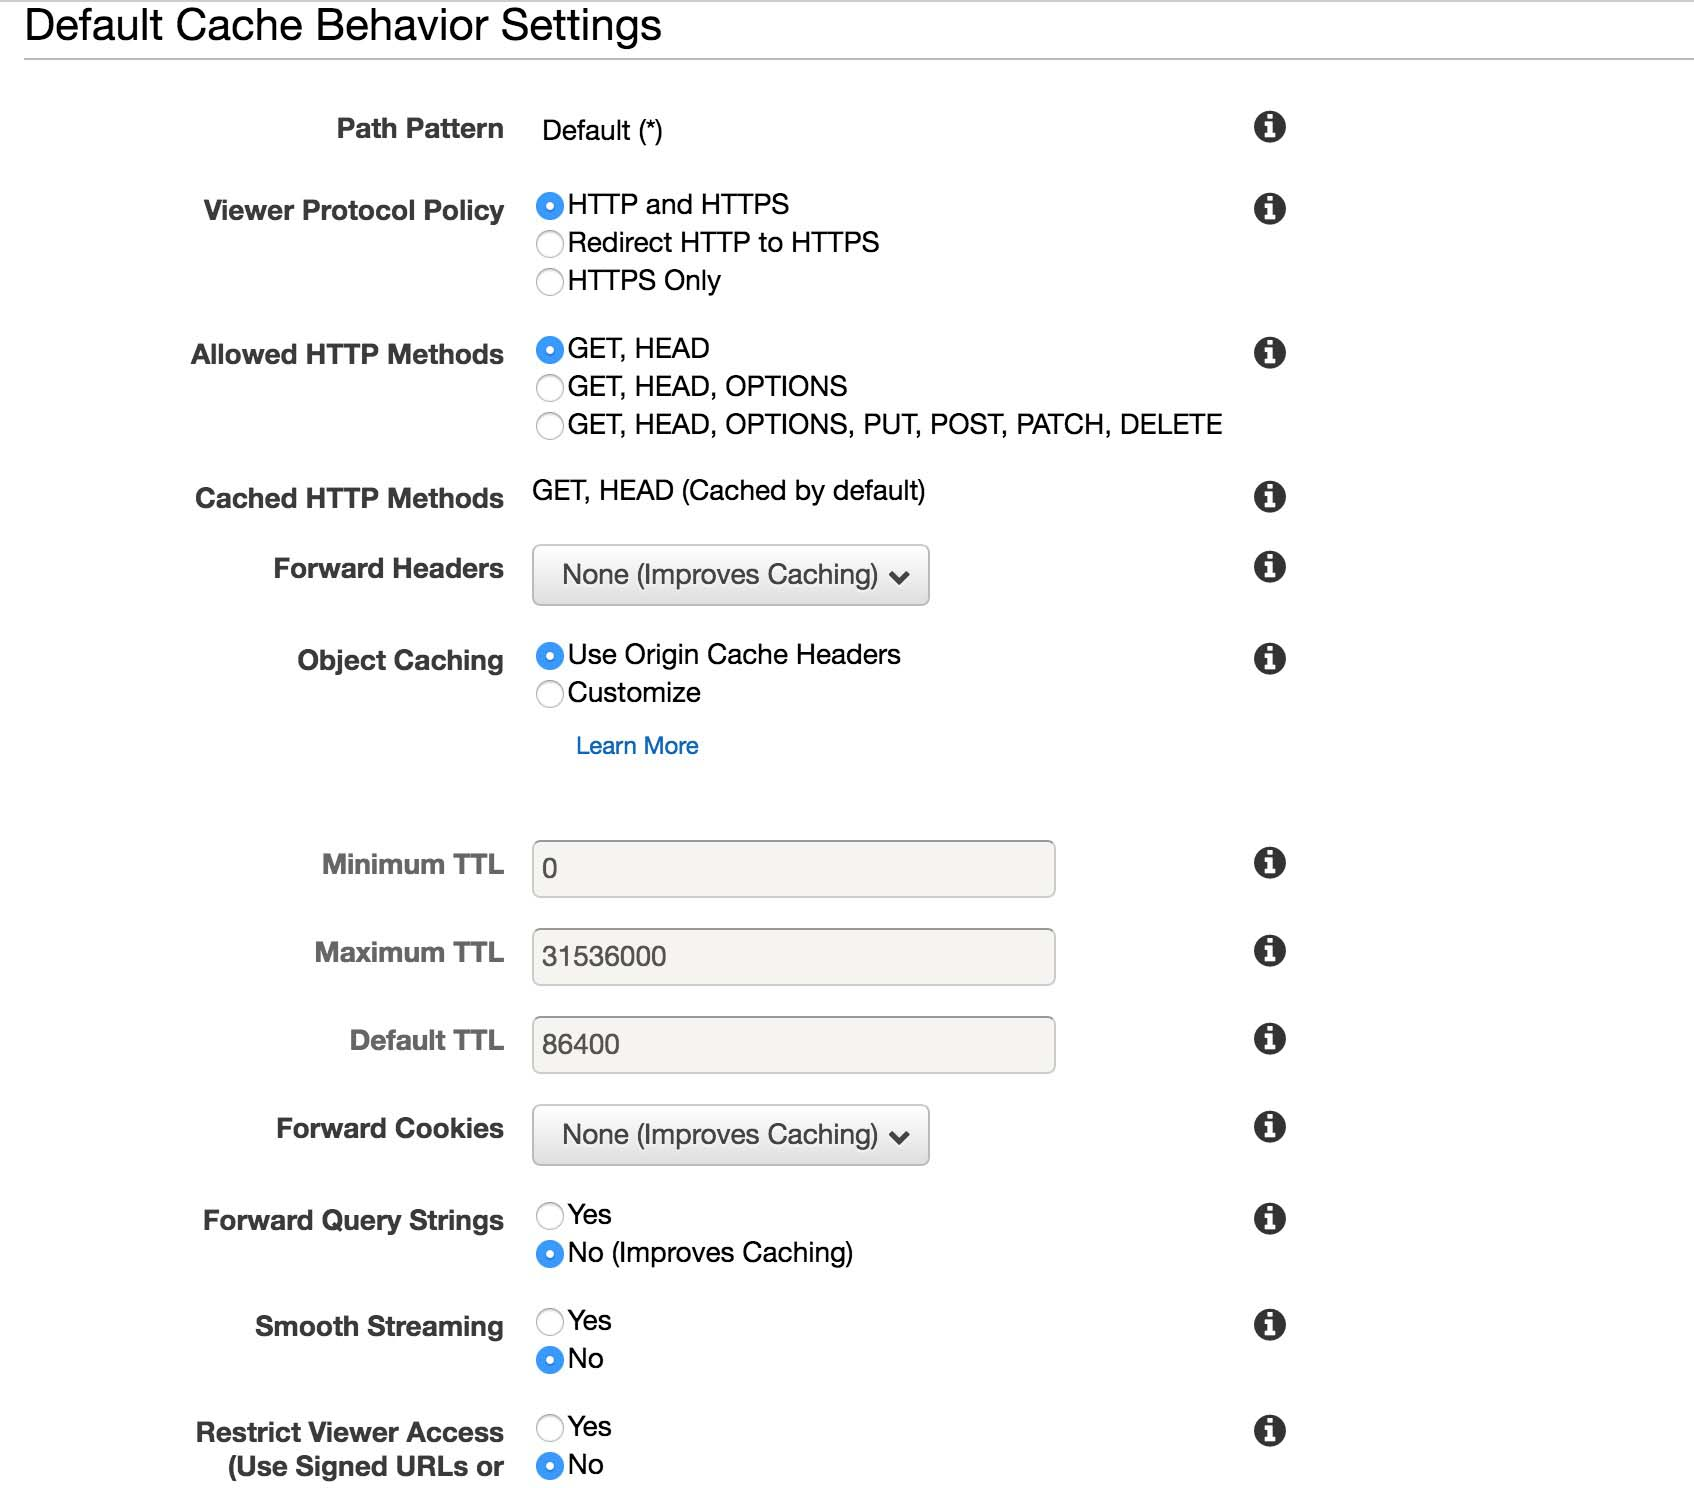 Default Cache Behavior Settings for cloudfront with drupal